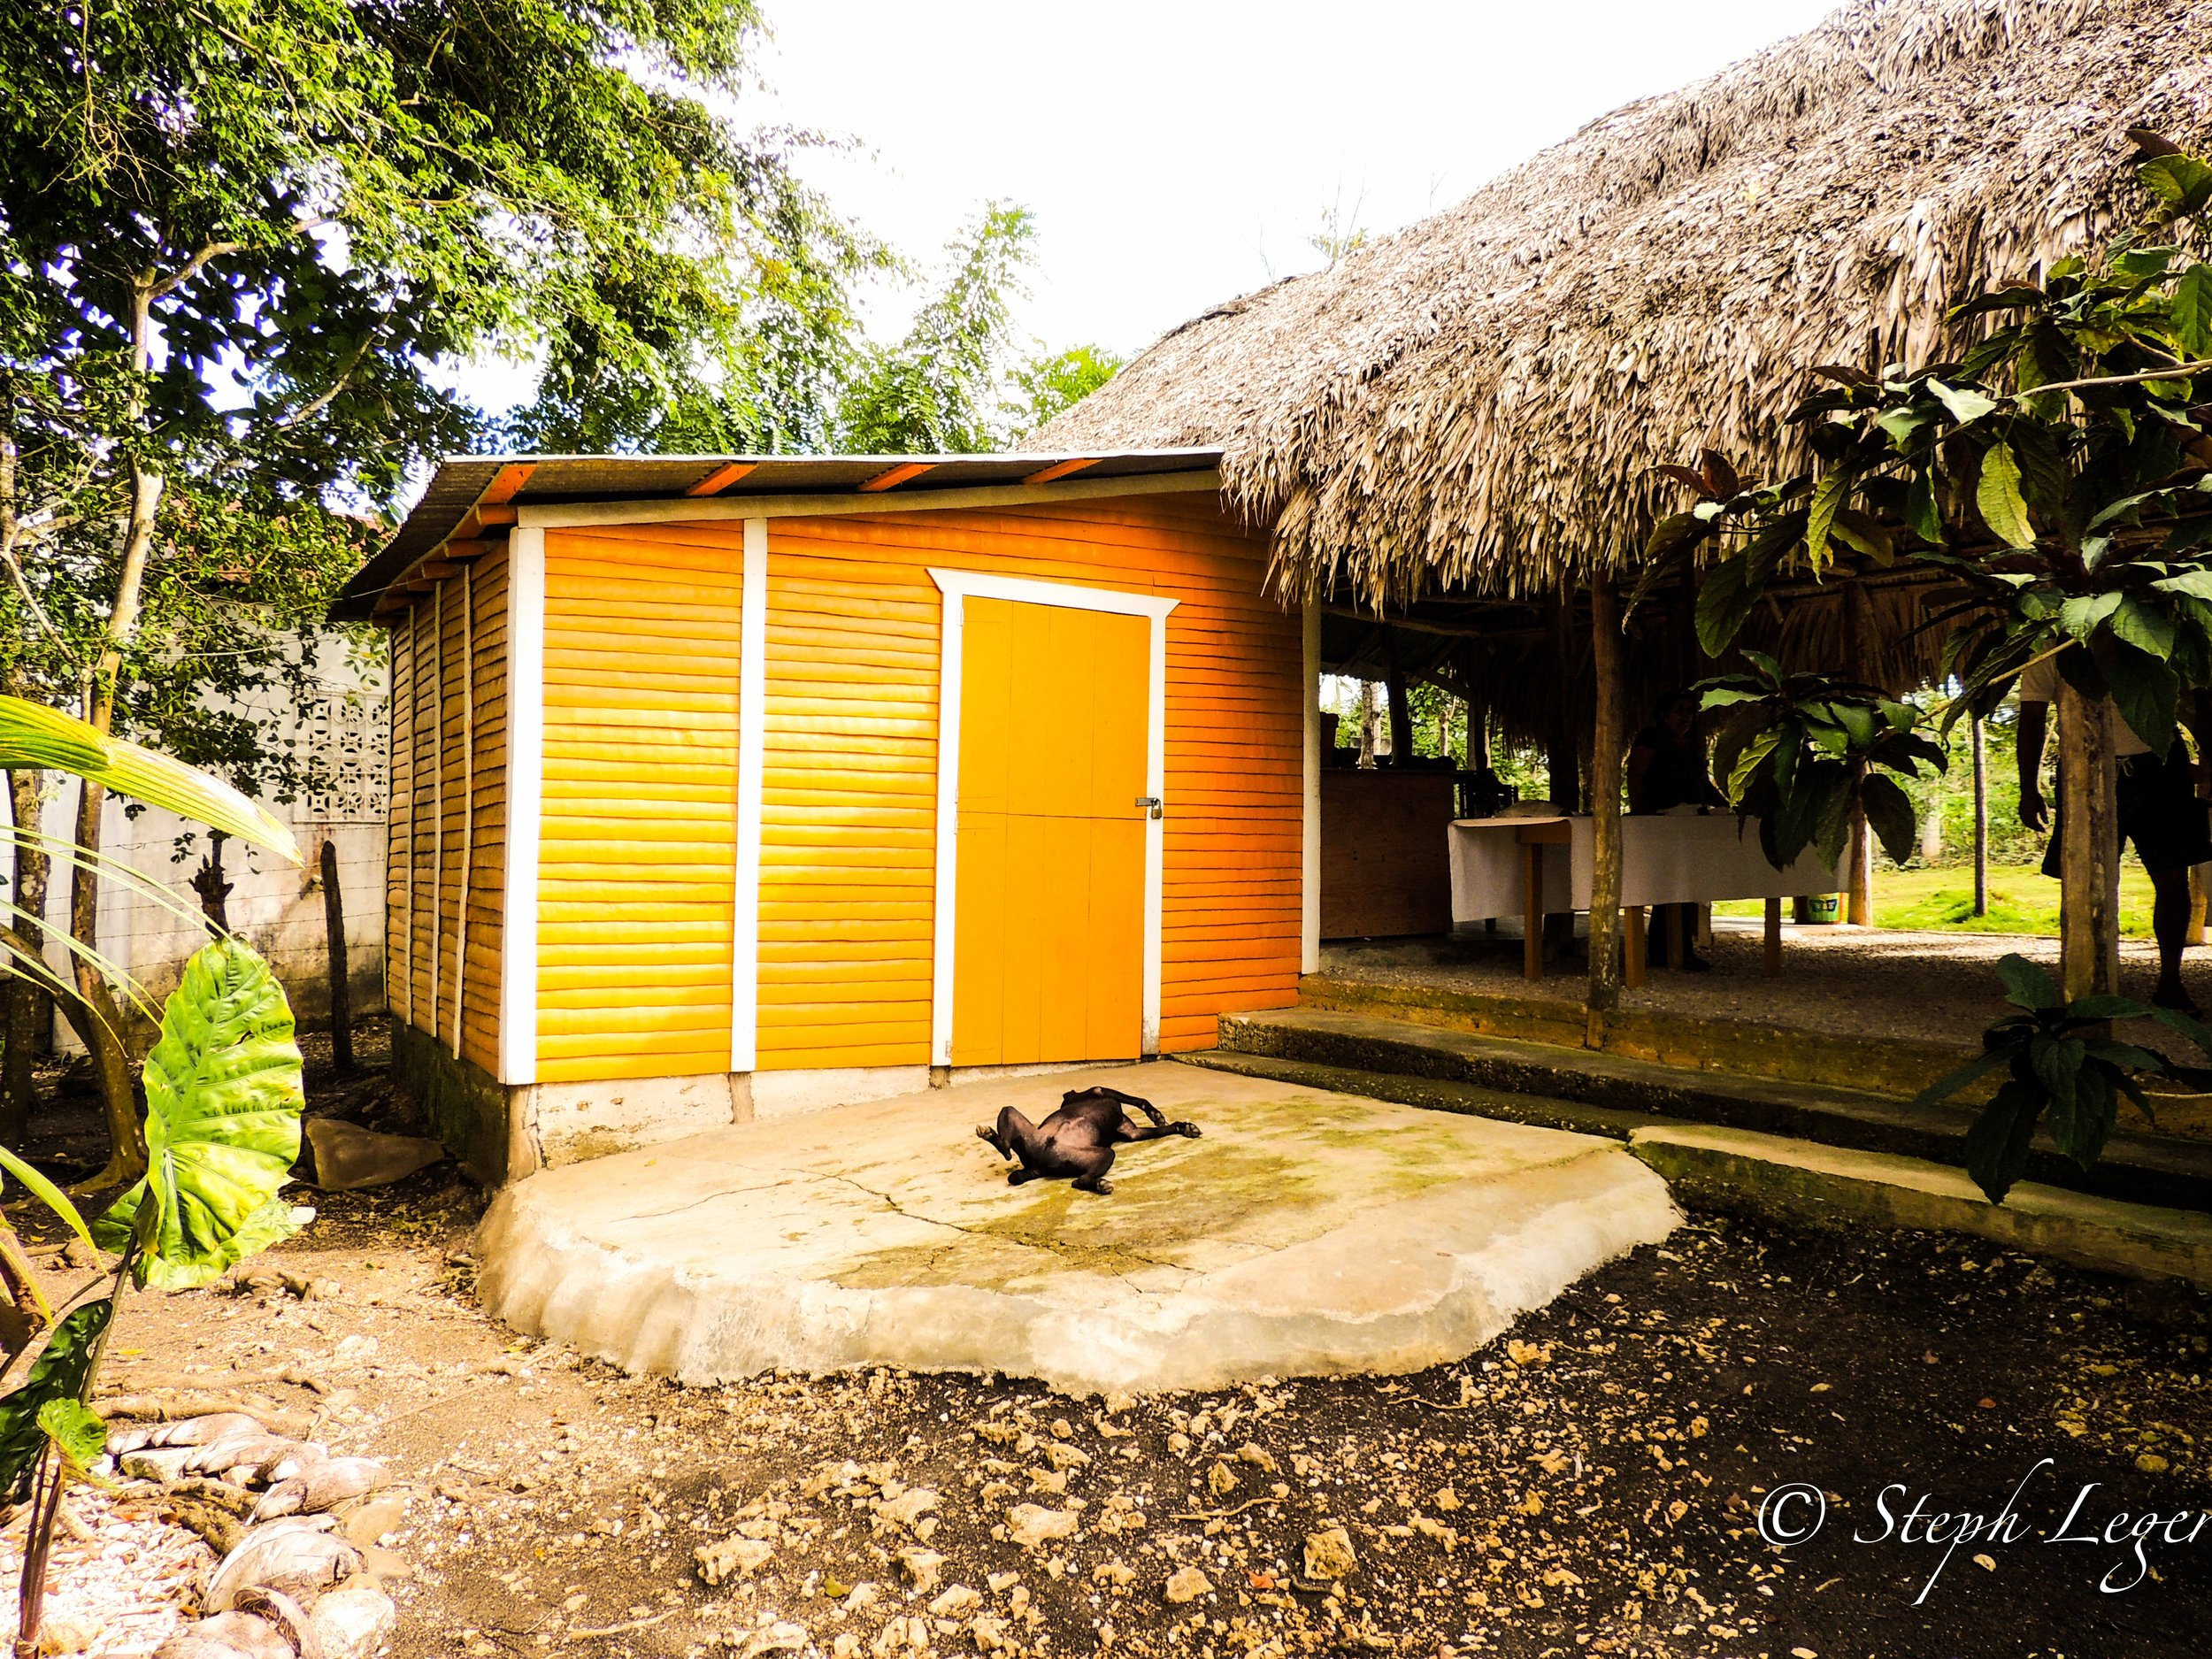 Family dog cooling off midday near a coconut plantation building